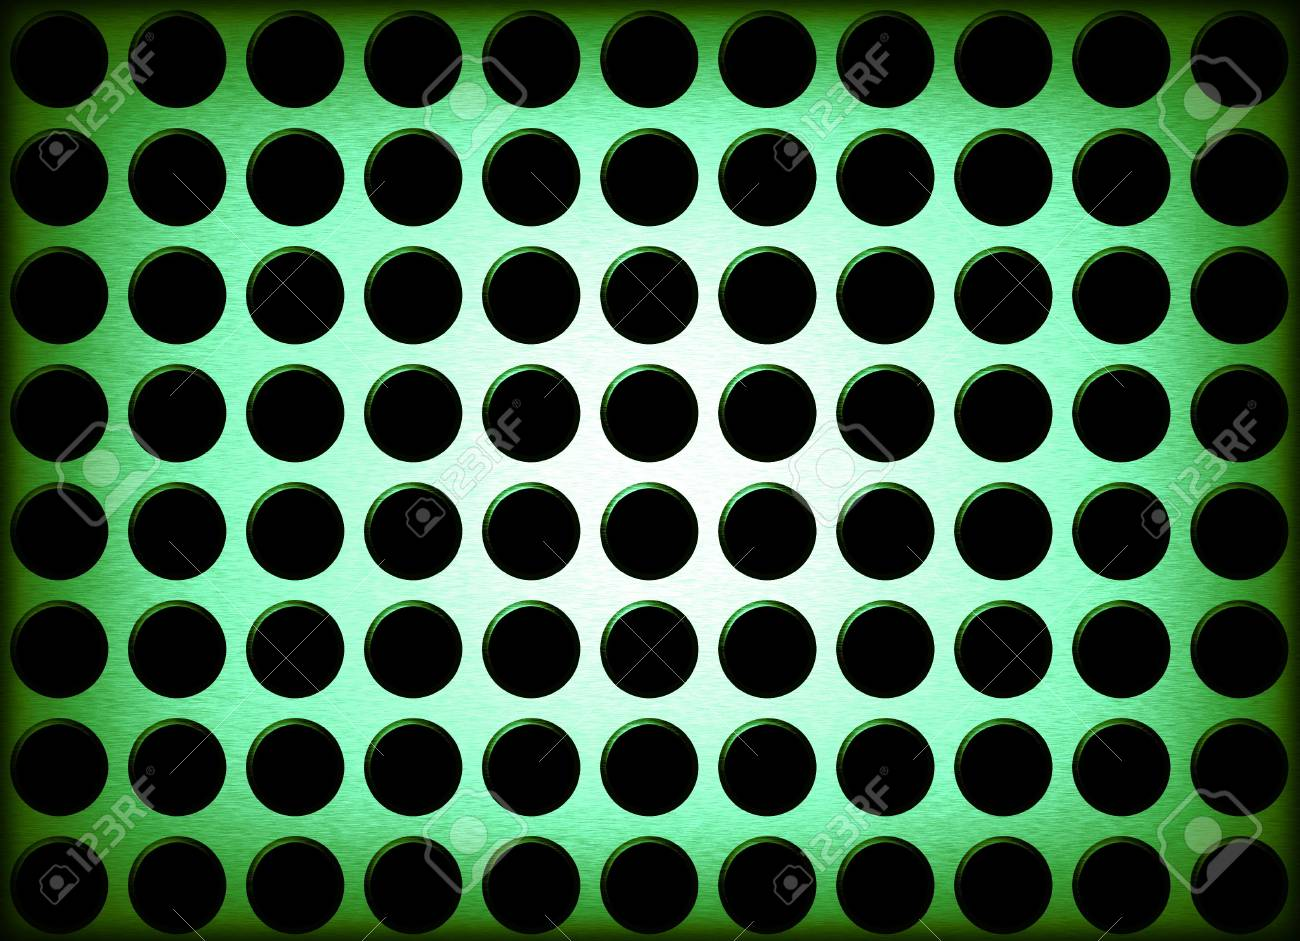 An abstract background illustration of metal holes. Stock Photo - 2826823